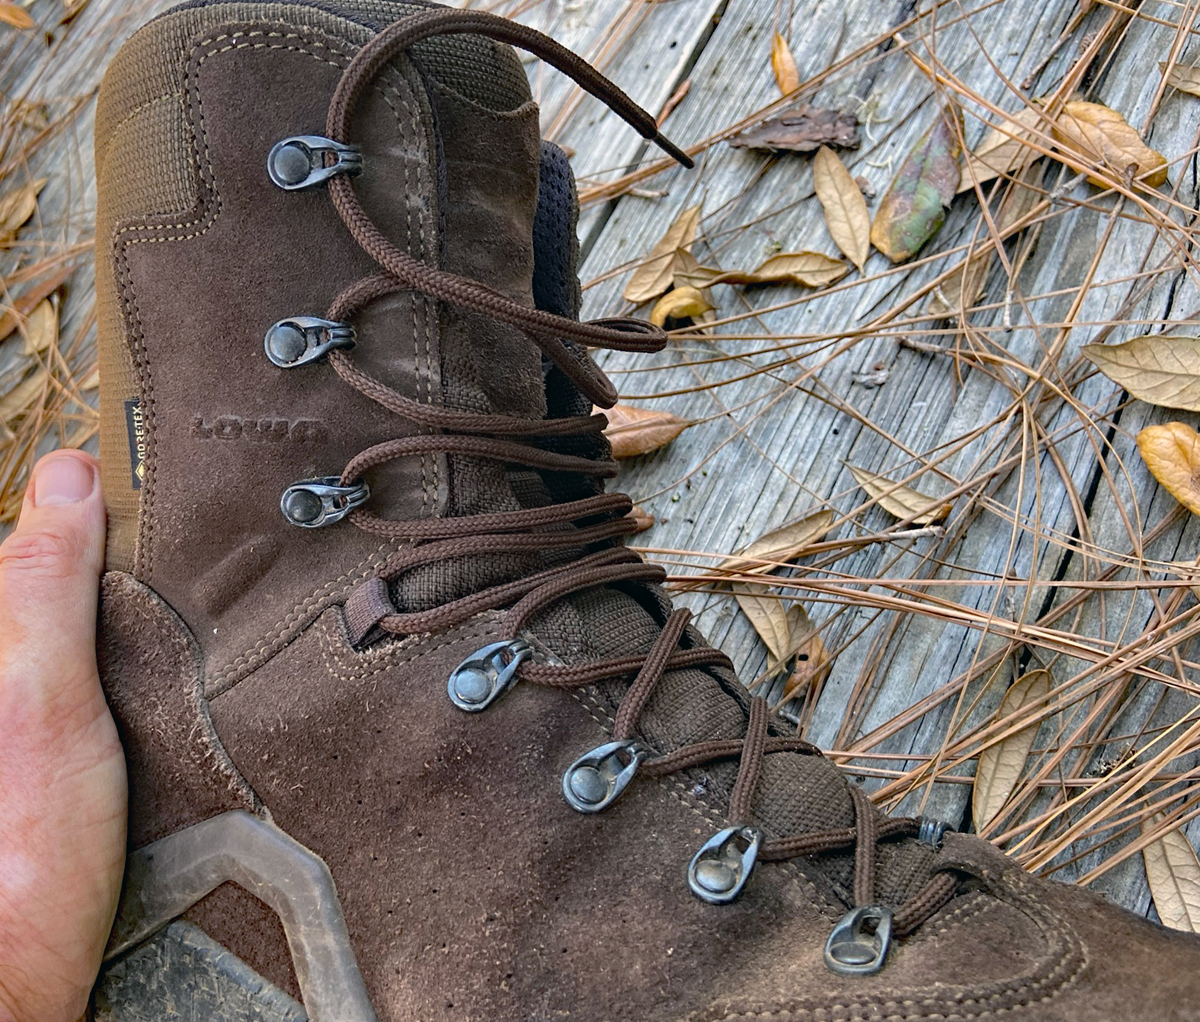 LOWA Z-8S GTX laces. (Photo © Russ Chastain)